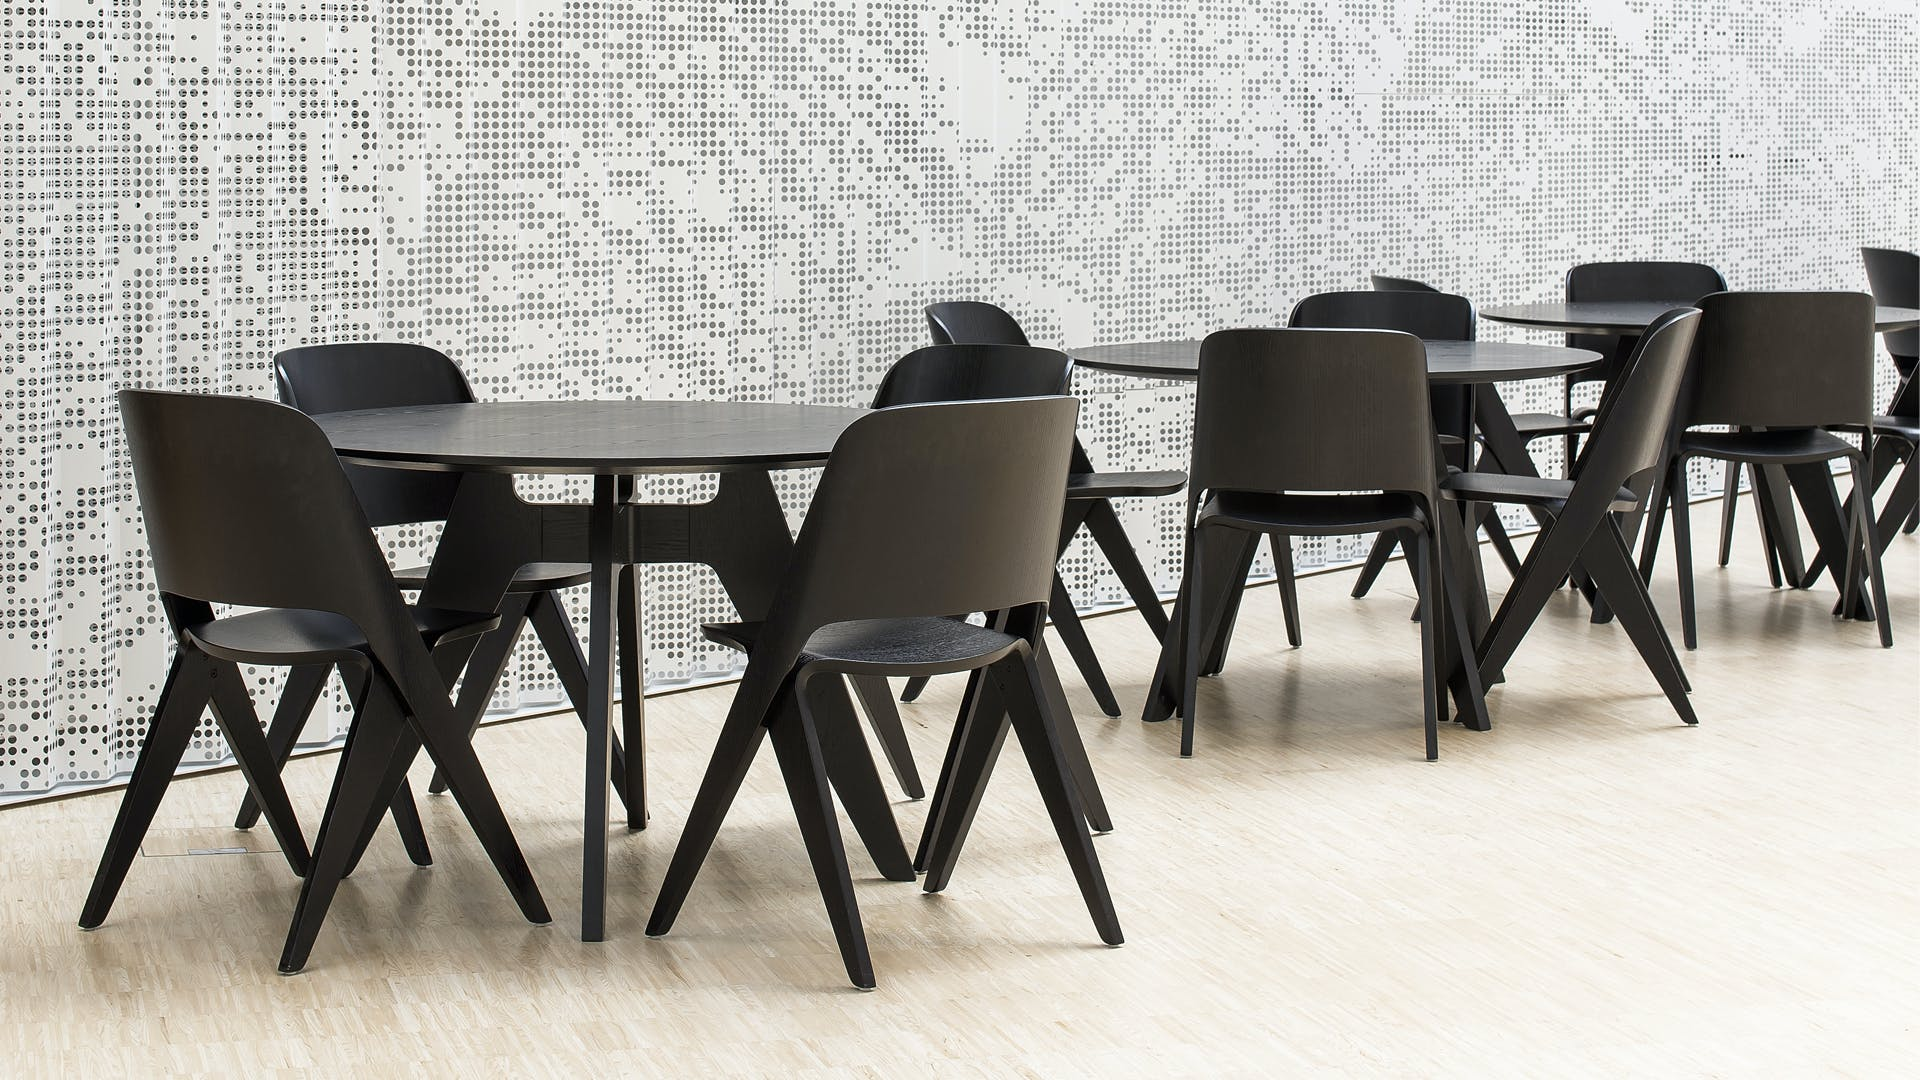 Lavitta Chairs And Tables